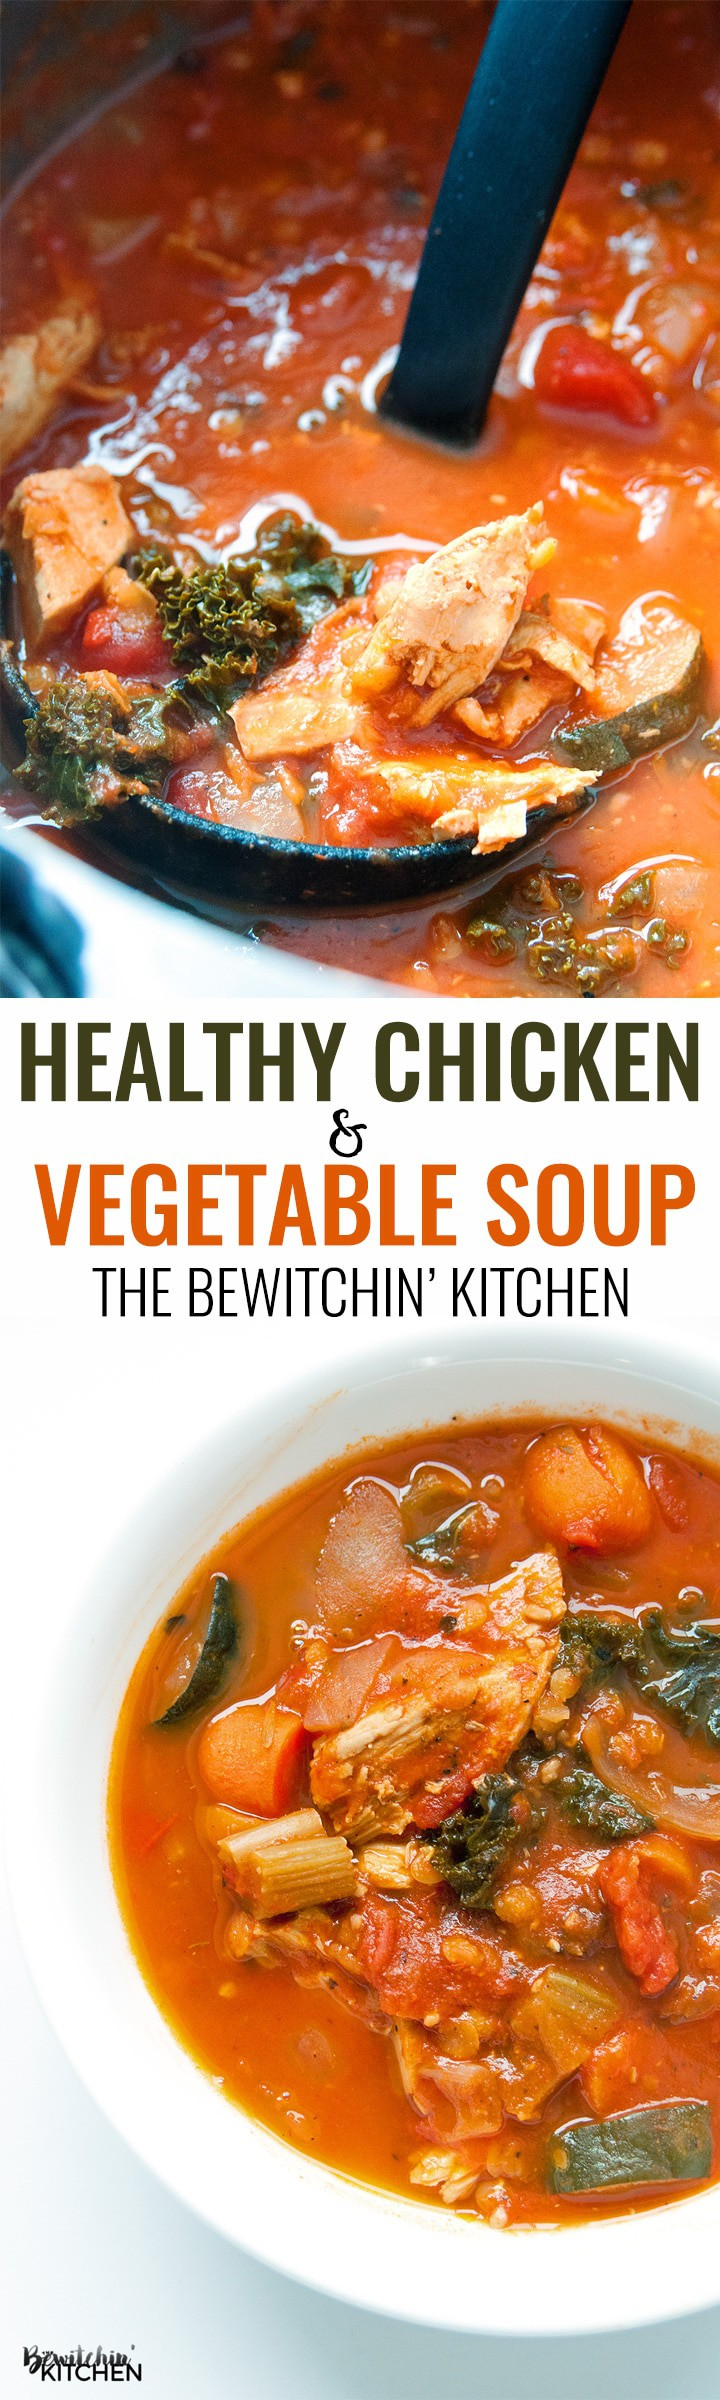 Healthy Chicken Vegetable Soup. Talk about healthy recipes made easy! Plus a secret ingredient that transforms all soups to